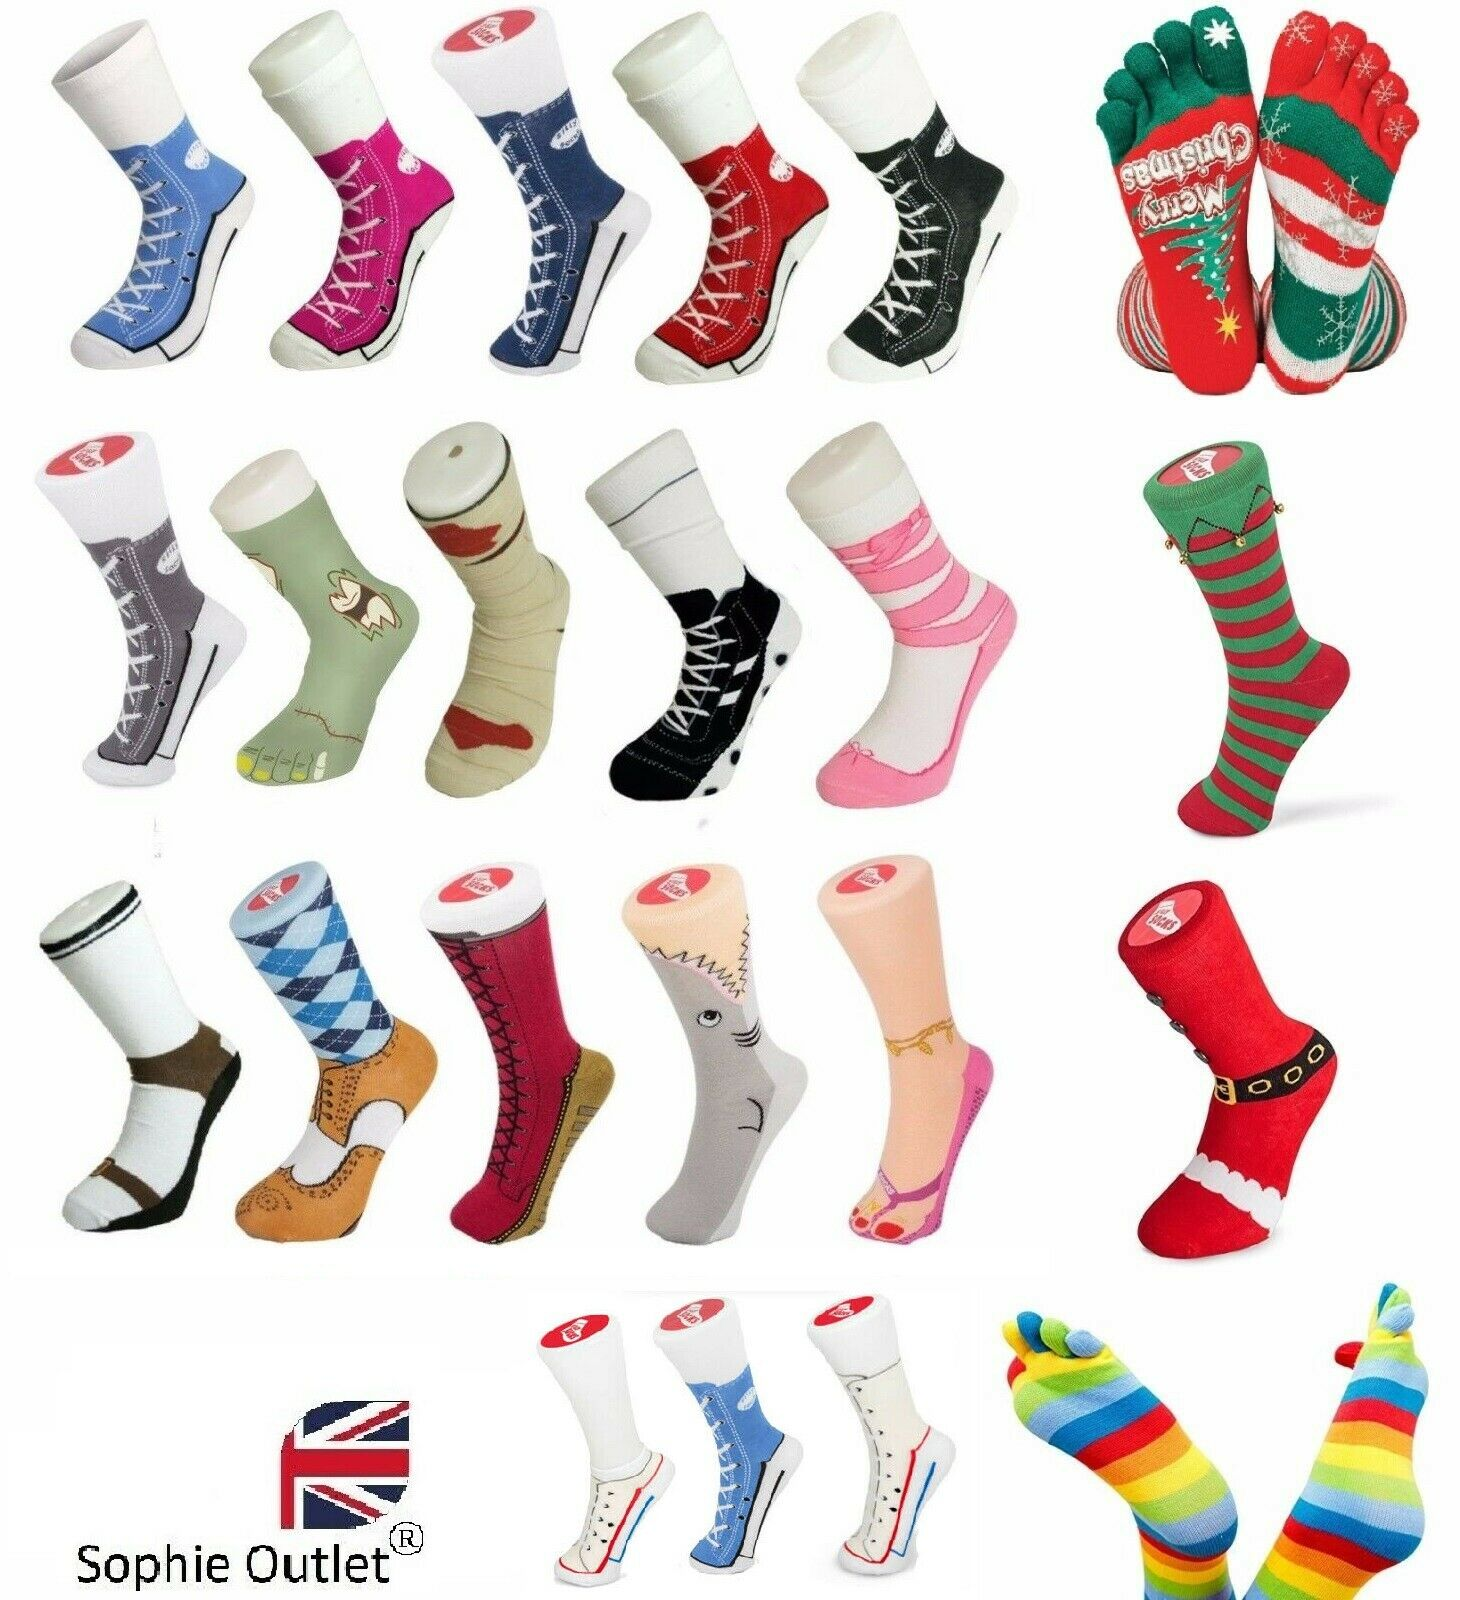 cosy silly socks ladies mens girls boys christmas socks fancy dress boot slipper 1 of 1free shipping see more